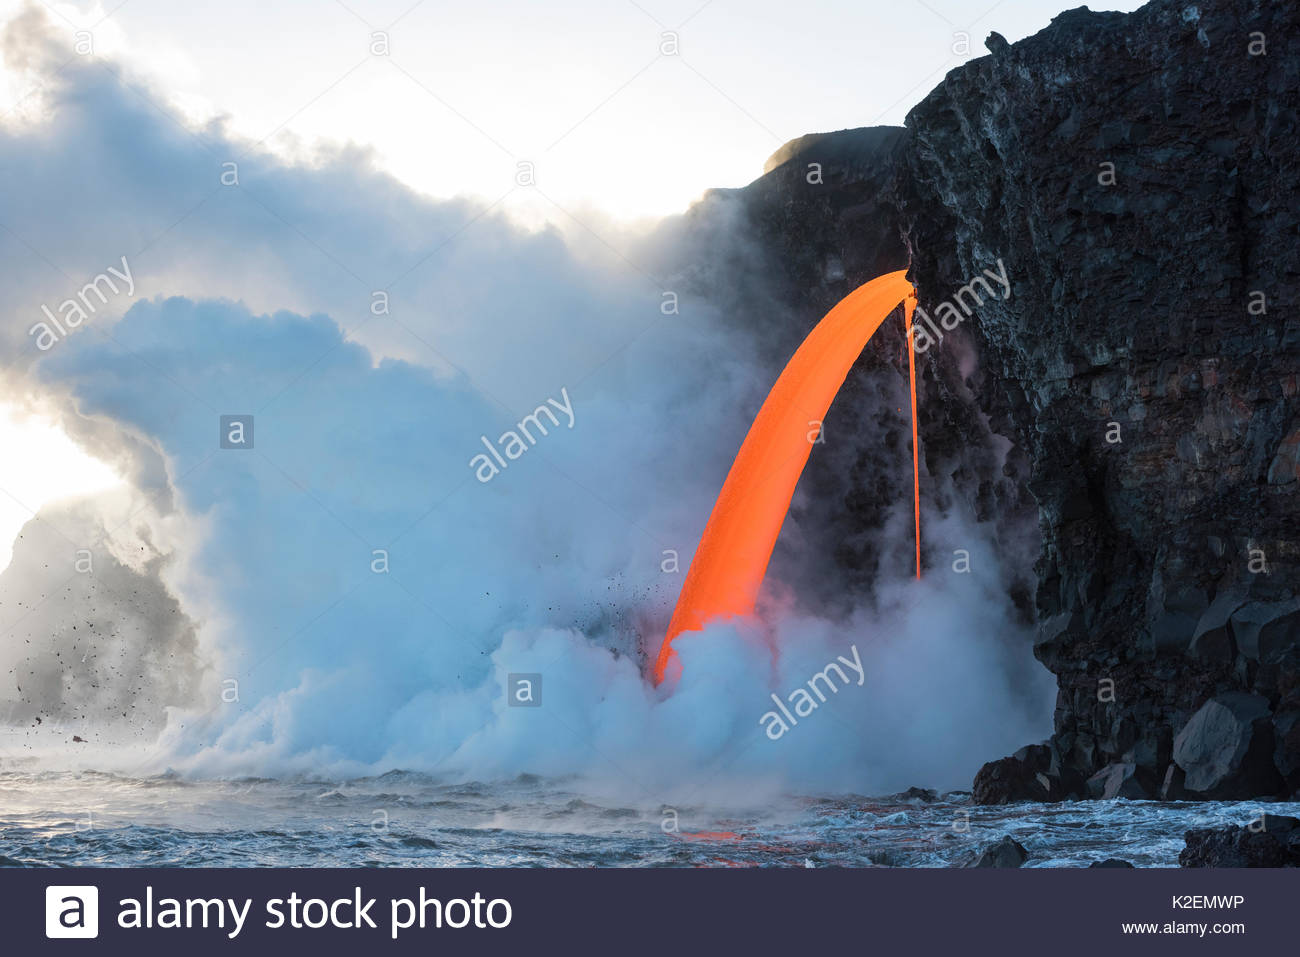 Hot lava from the 61G flow from Kilauea Volcano entering the ocean from the open end of a lava tube at the Kamokuna entry in Hawaii Volcanoes National Park, producing steam explosions, Kalapana, Puna, Hawaii. January 2017. - Stock Image